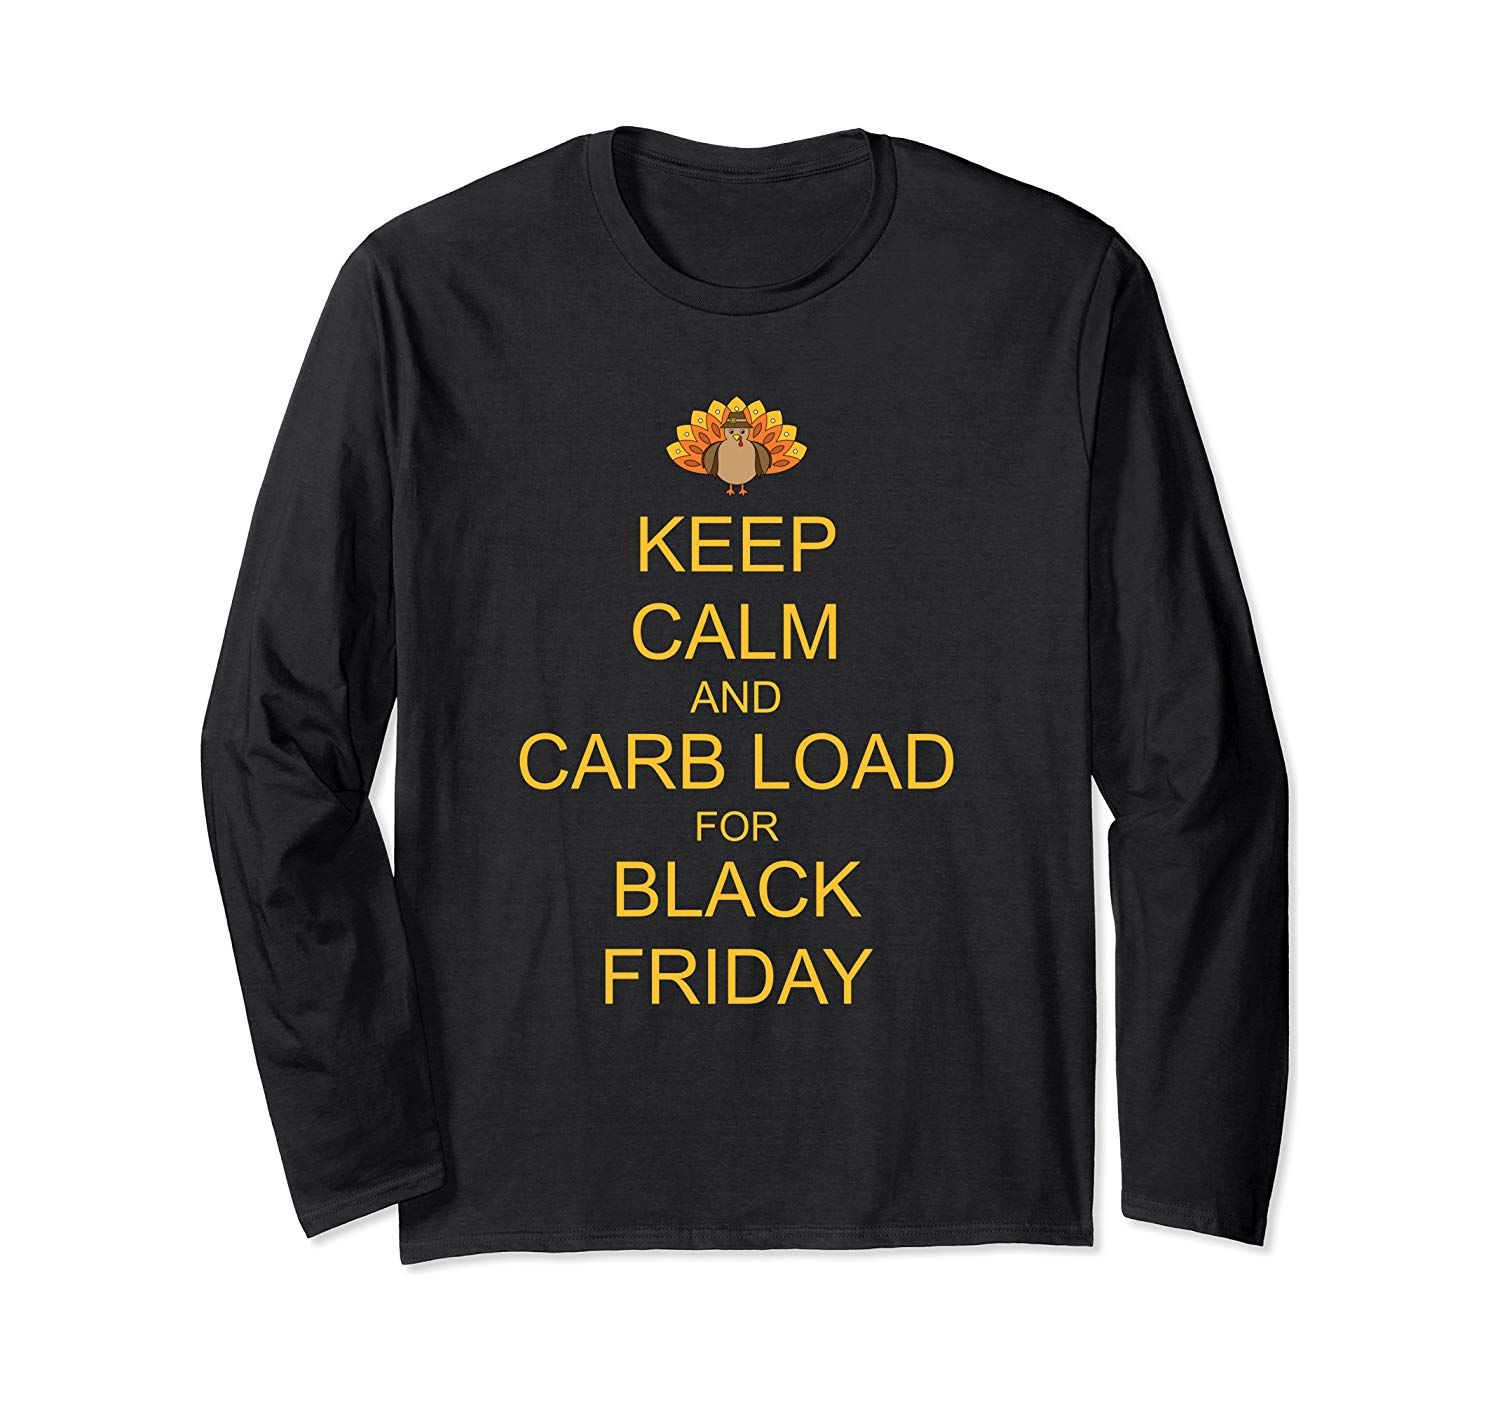 Keep Calm and Carb Load For Black Friday Funny Thanksgiving Long Sleeve T-Shirt #blackfridayfunny